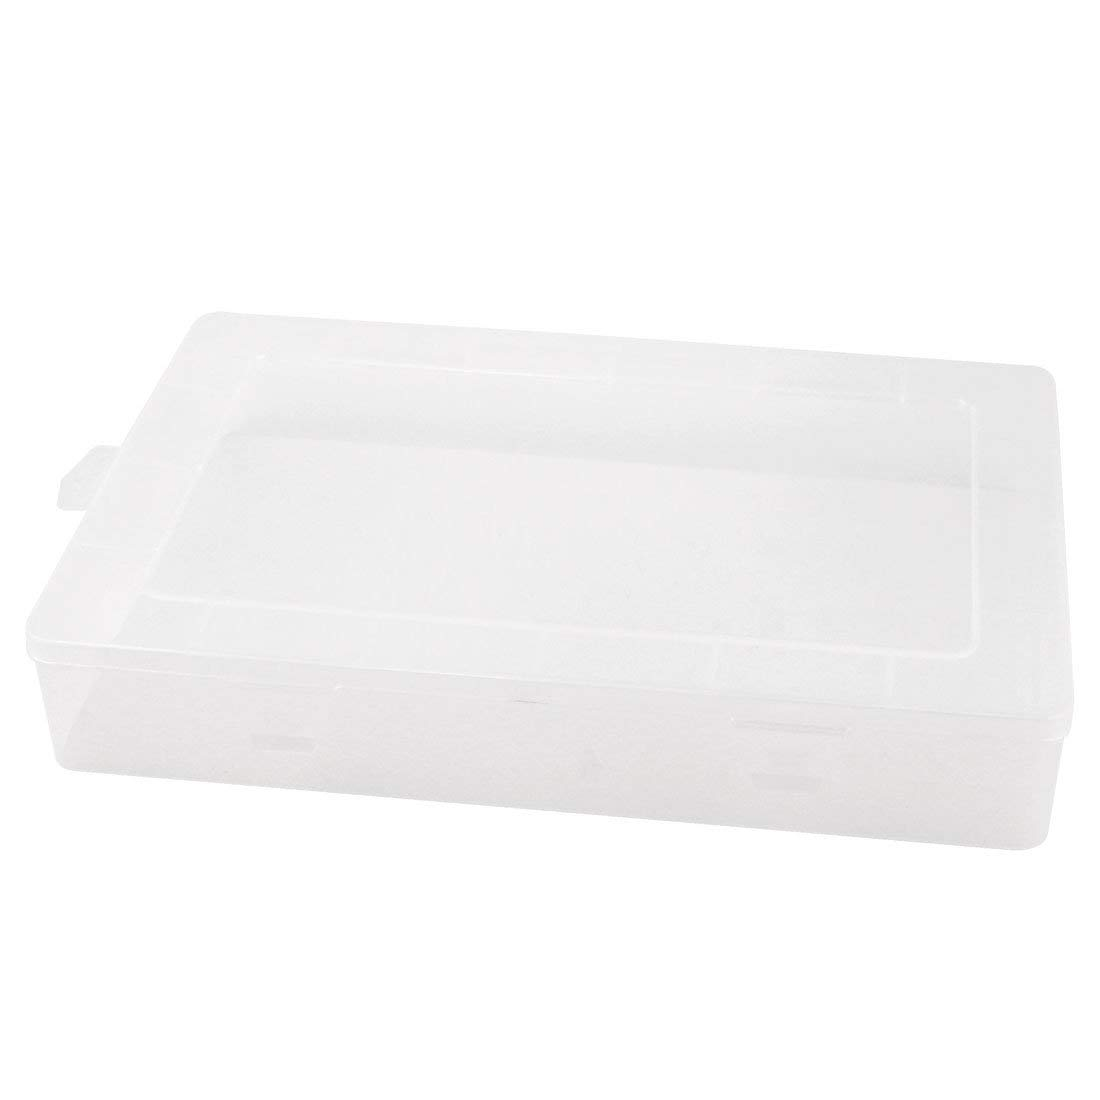 "Aexit Plastic Electronic Tool Organizers Components Storage Case Box Toolbox 13"" x Tool Boxes 9"" Clear"